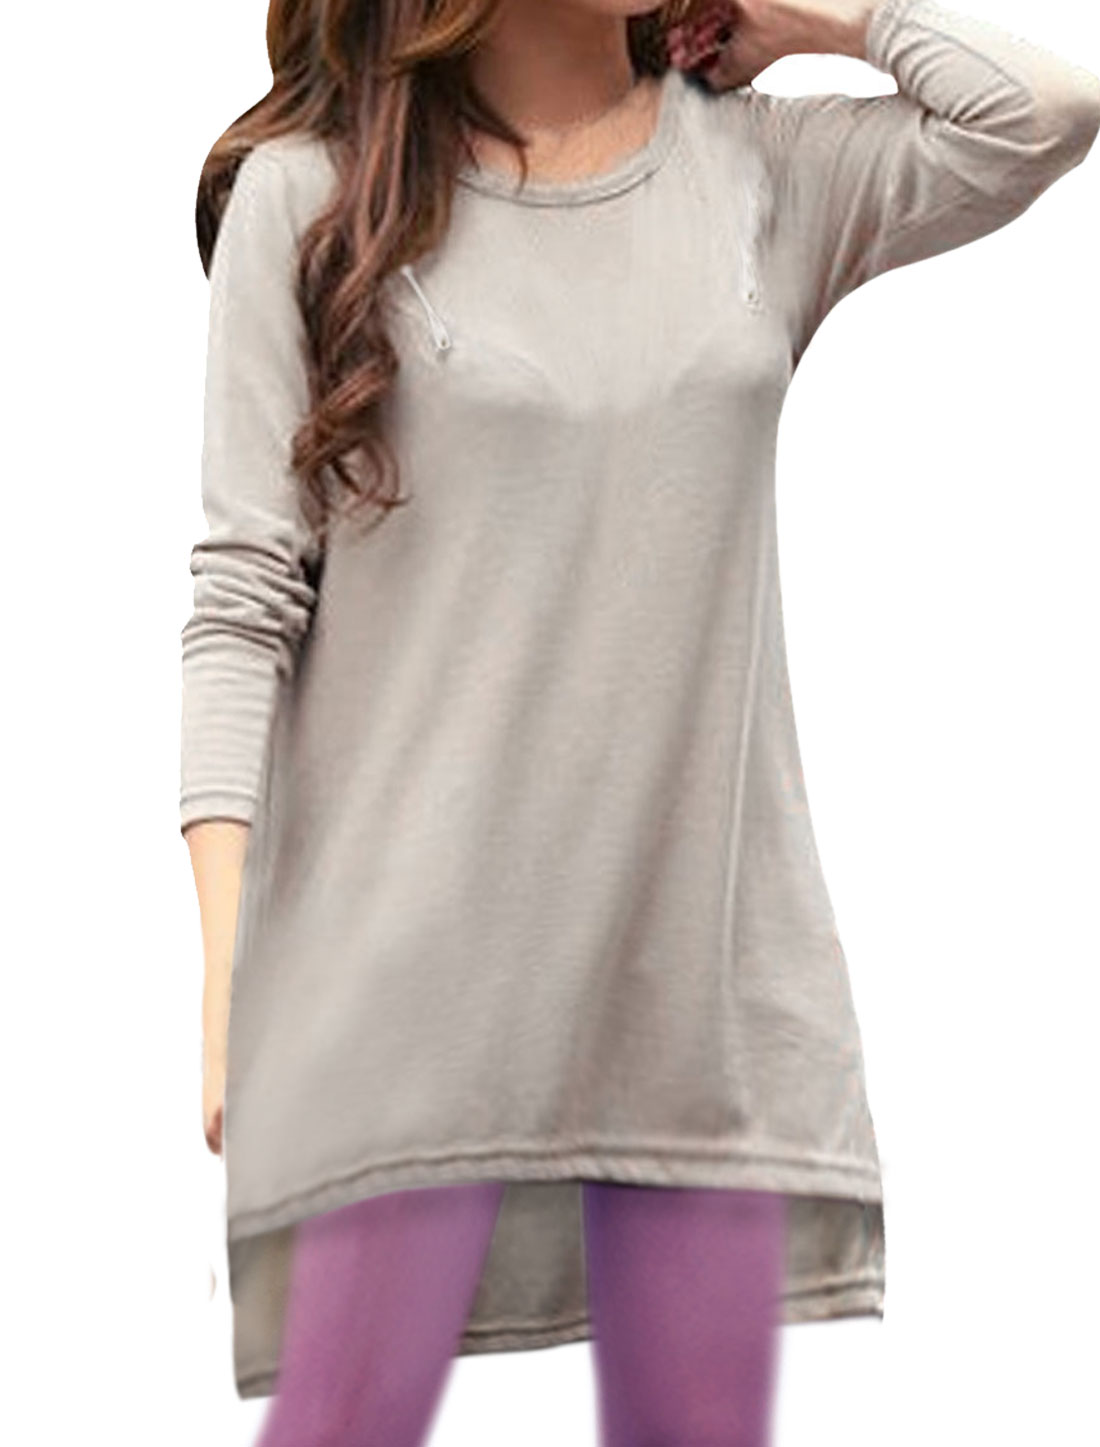 Ladies Apricot Scoop Neck Pullover Casual Autumn Tunic Shirt XS